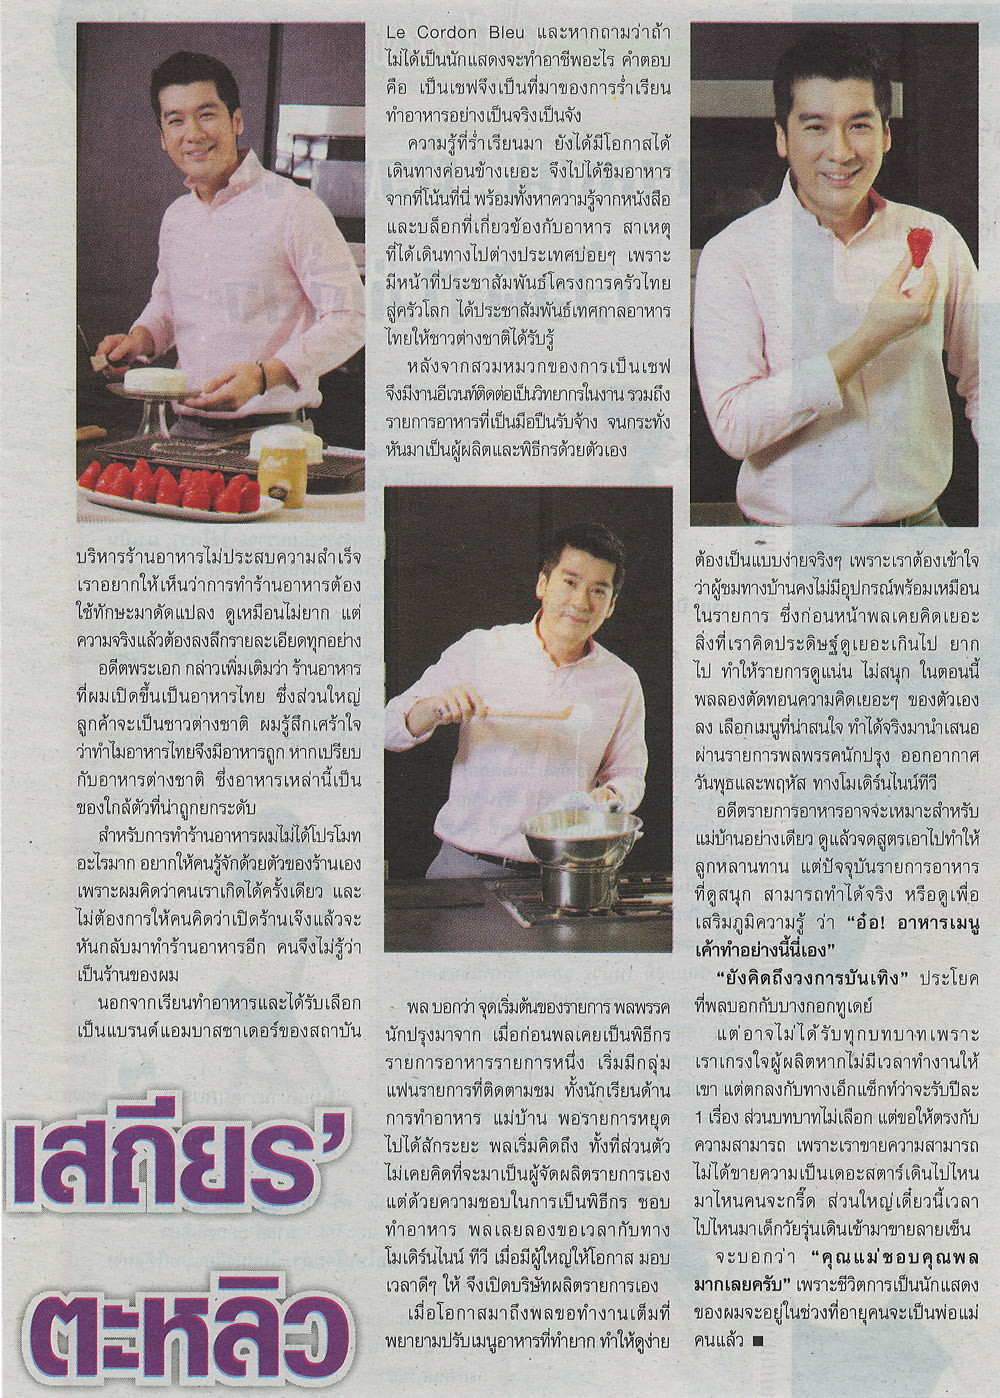 bangkoktoday